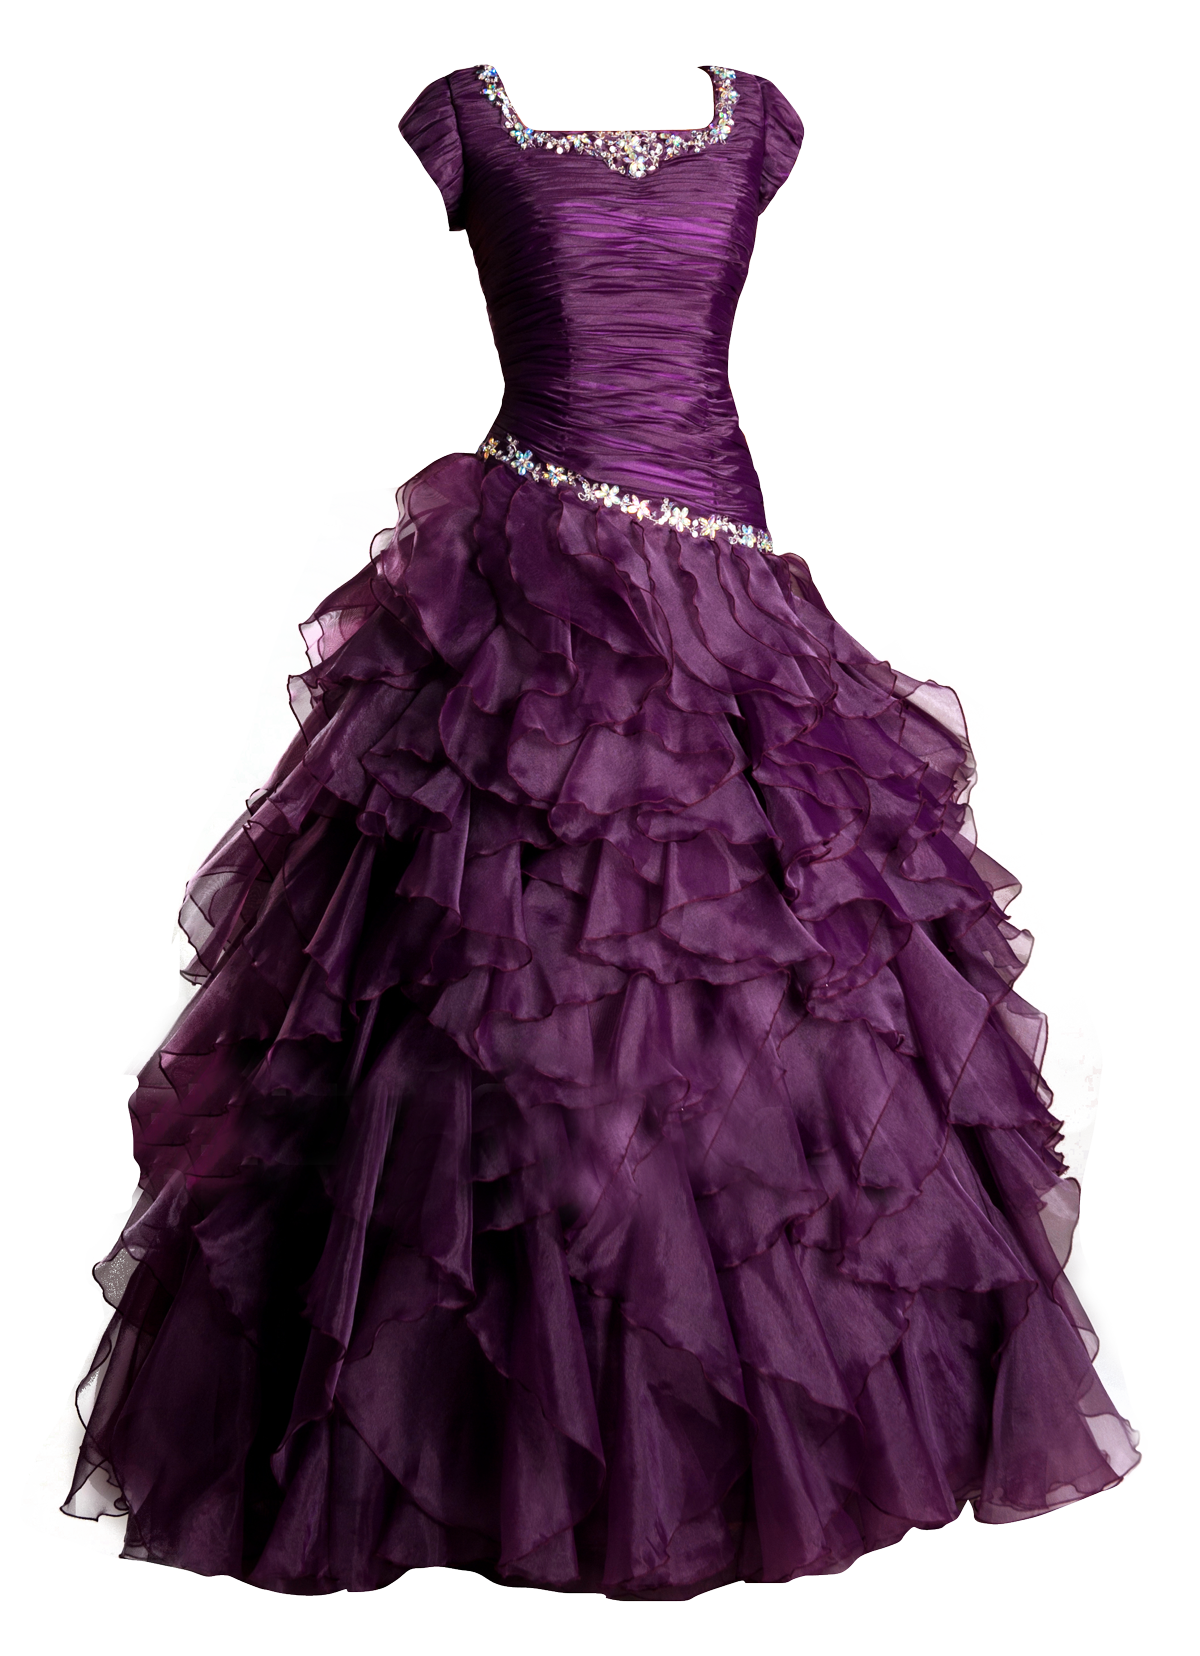 Dress Picture PNG Image